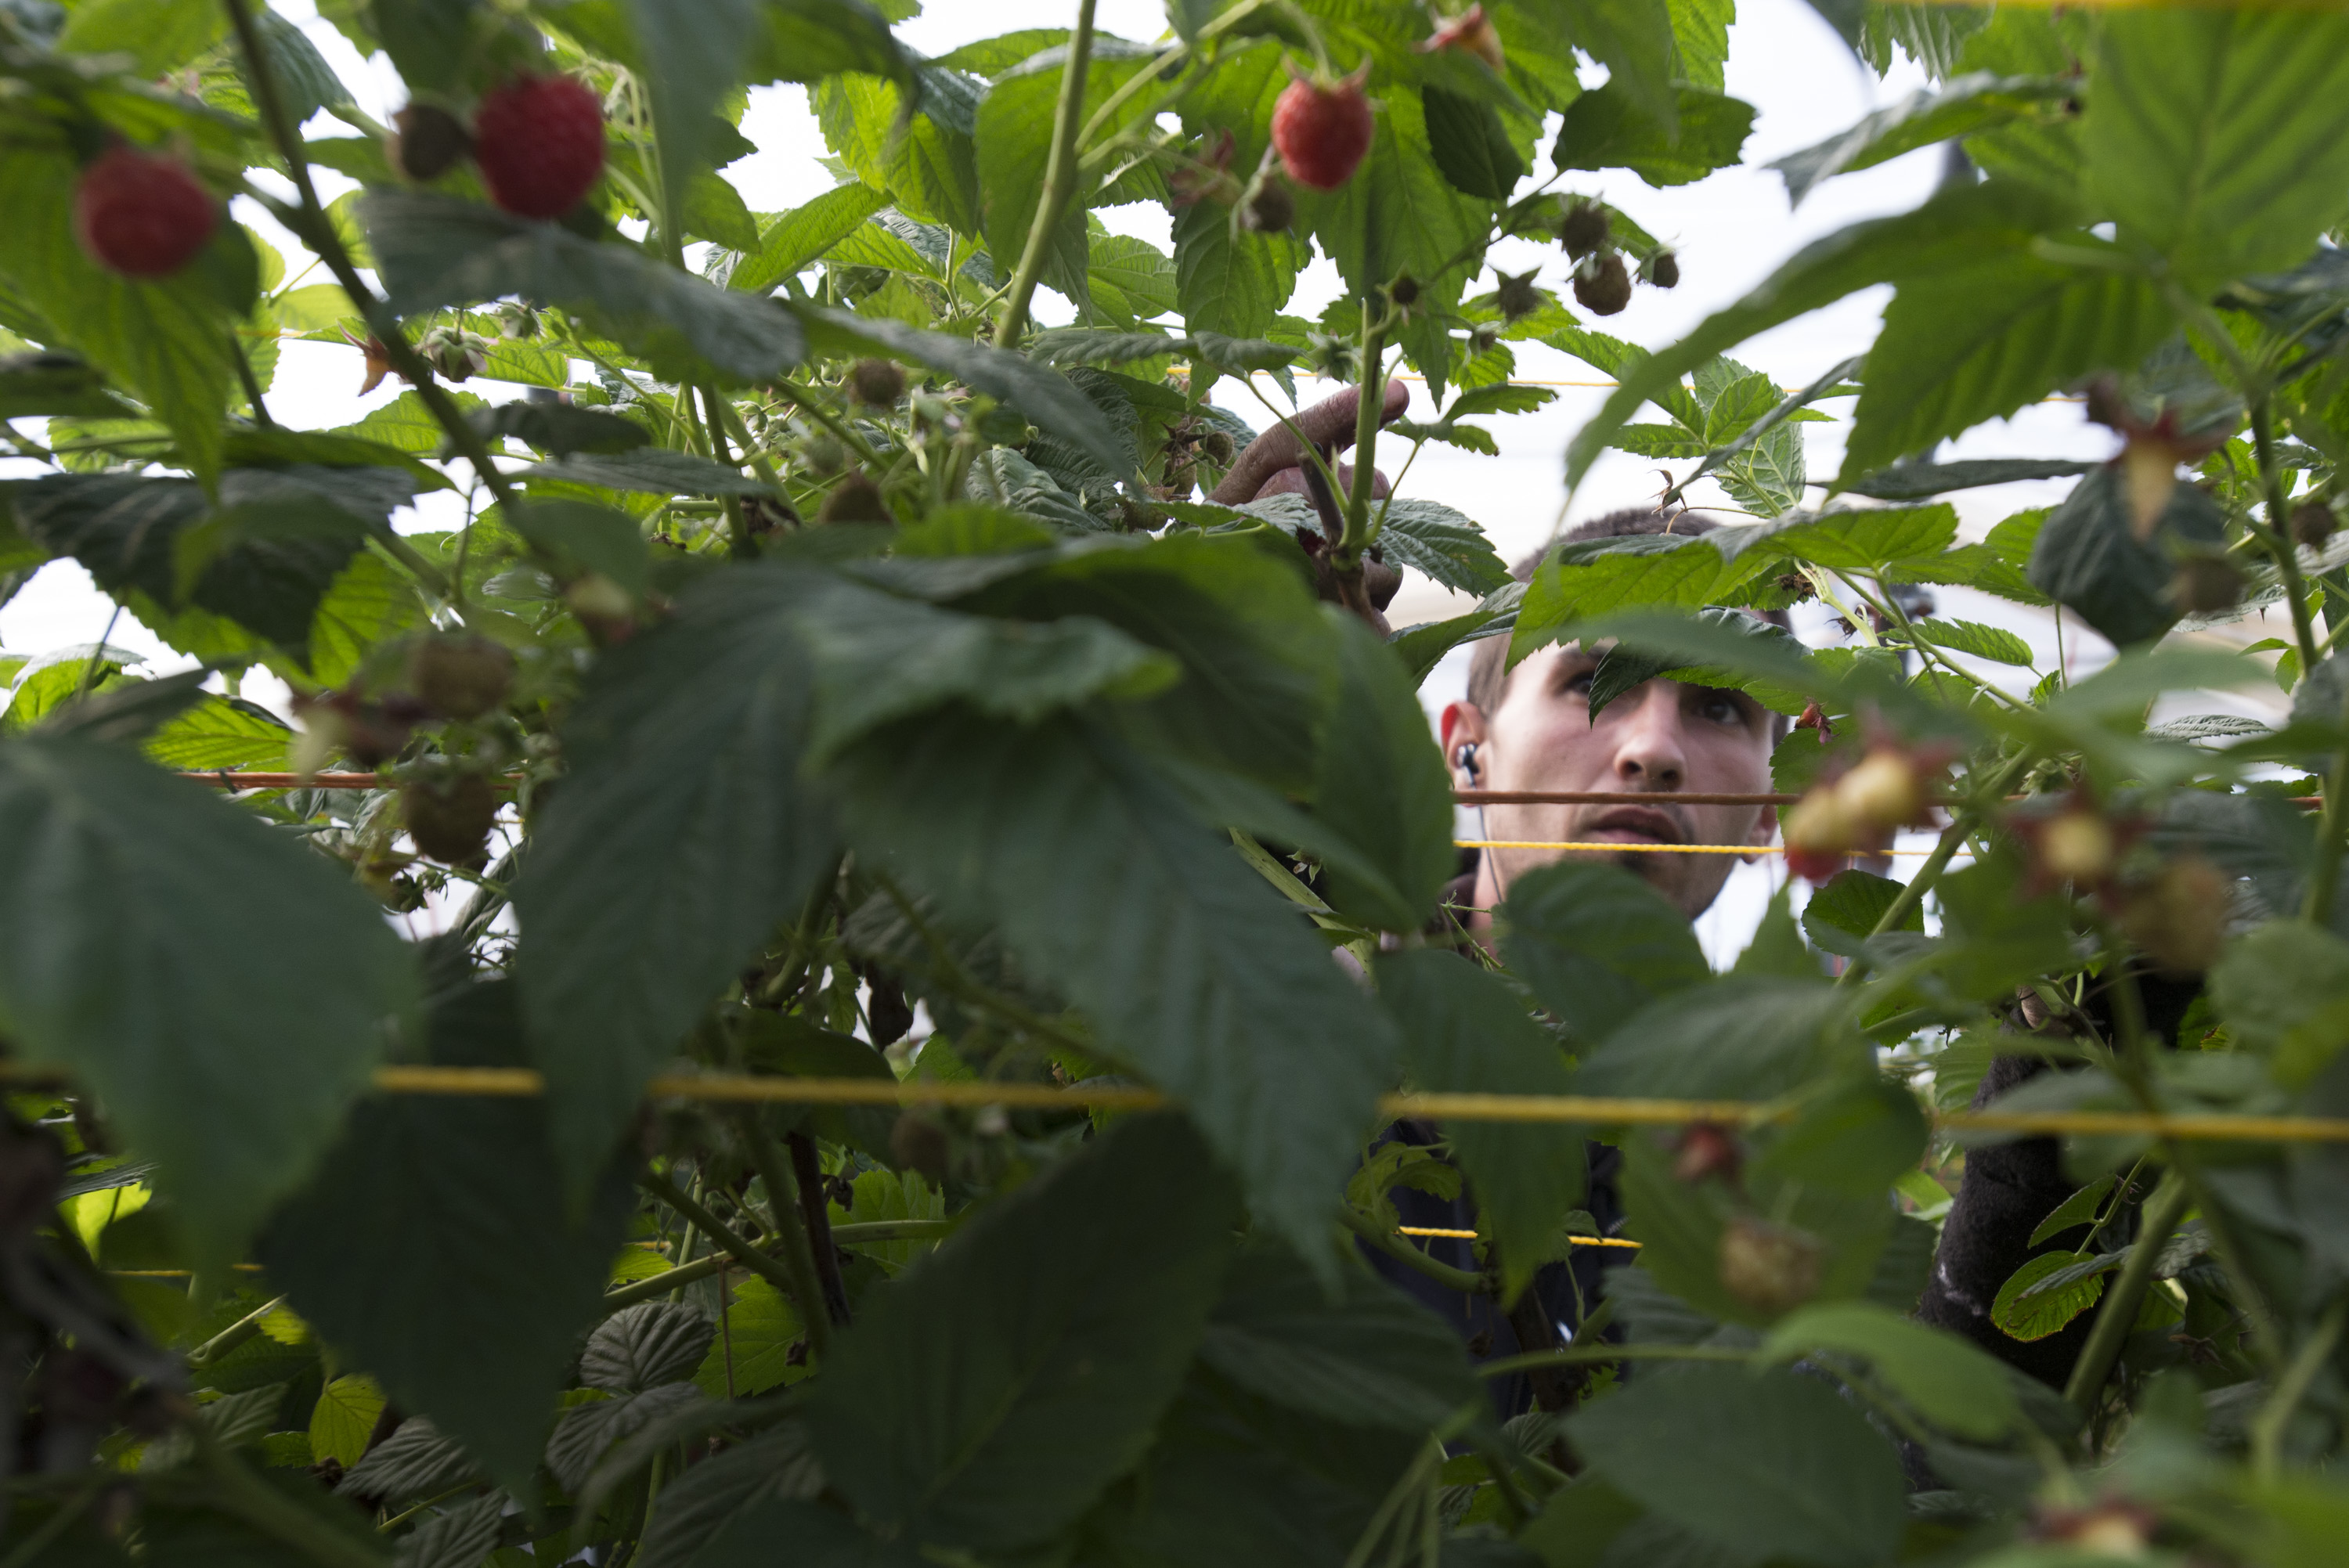 UK fruit farmers feel the squeeze as Brexit looms